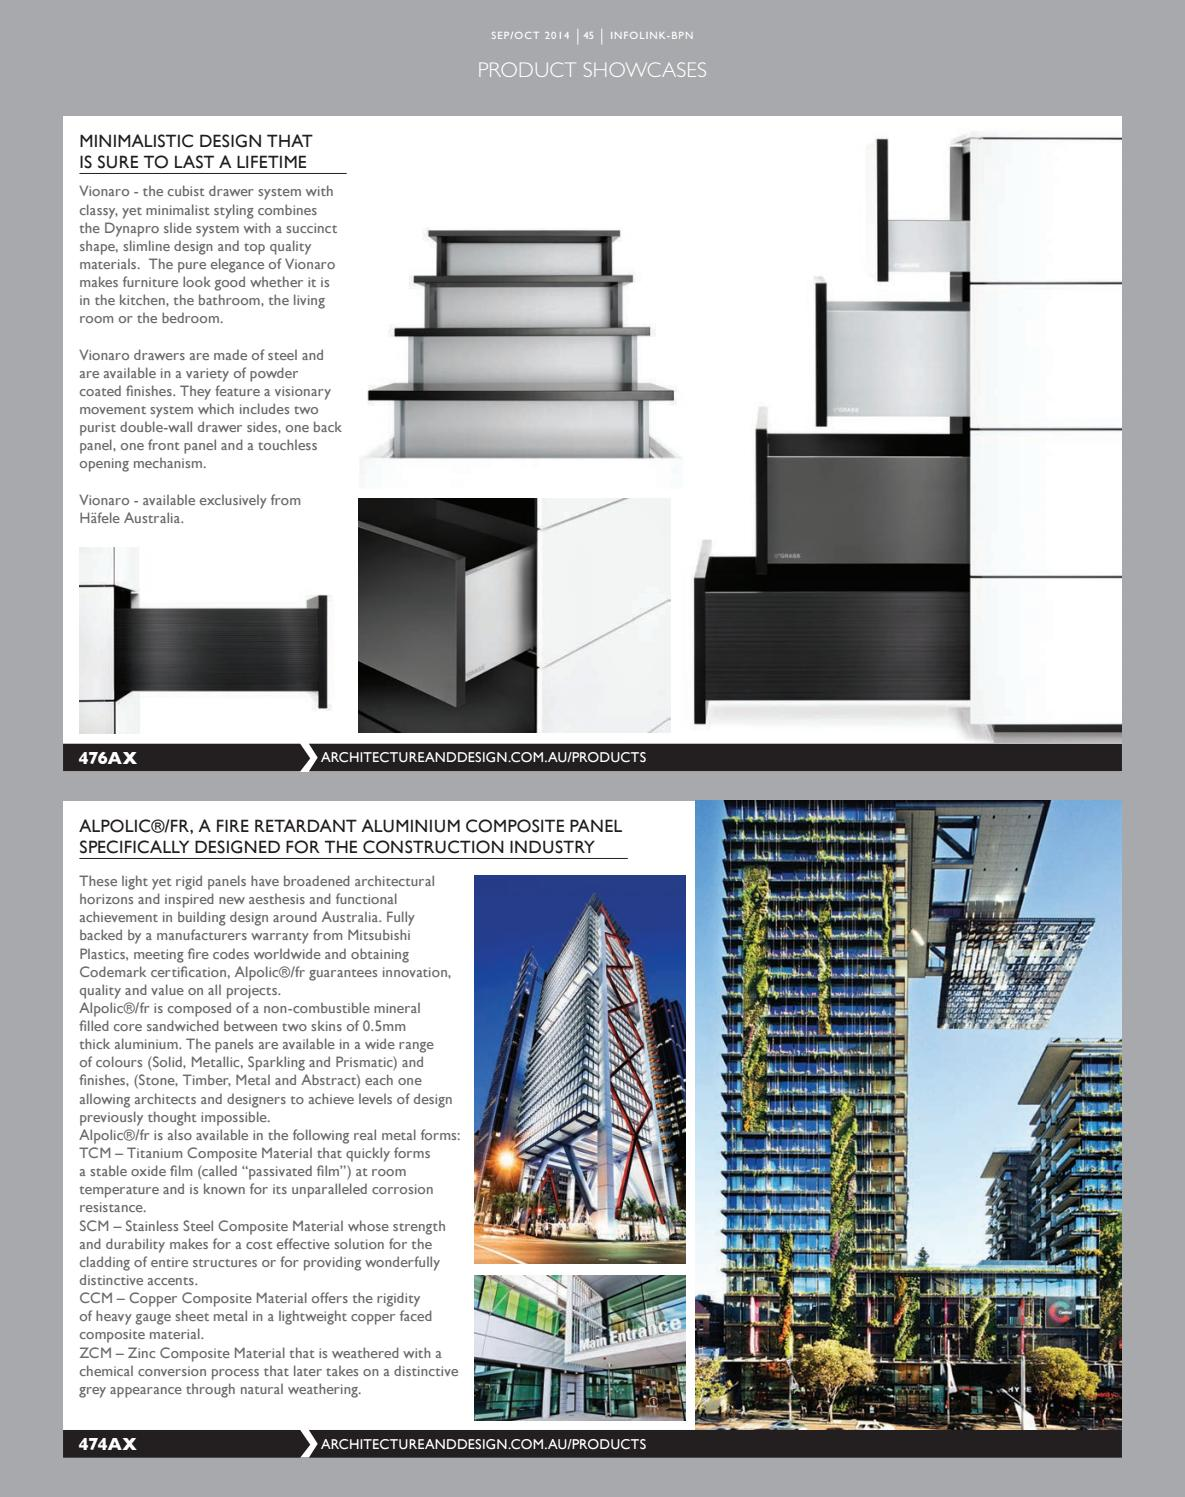 infolink BuidingProductsNews Sep/Oct 2014 by Indesign Media